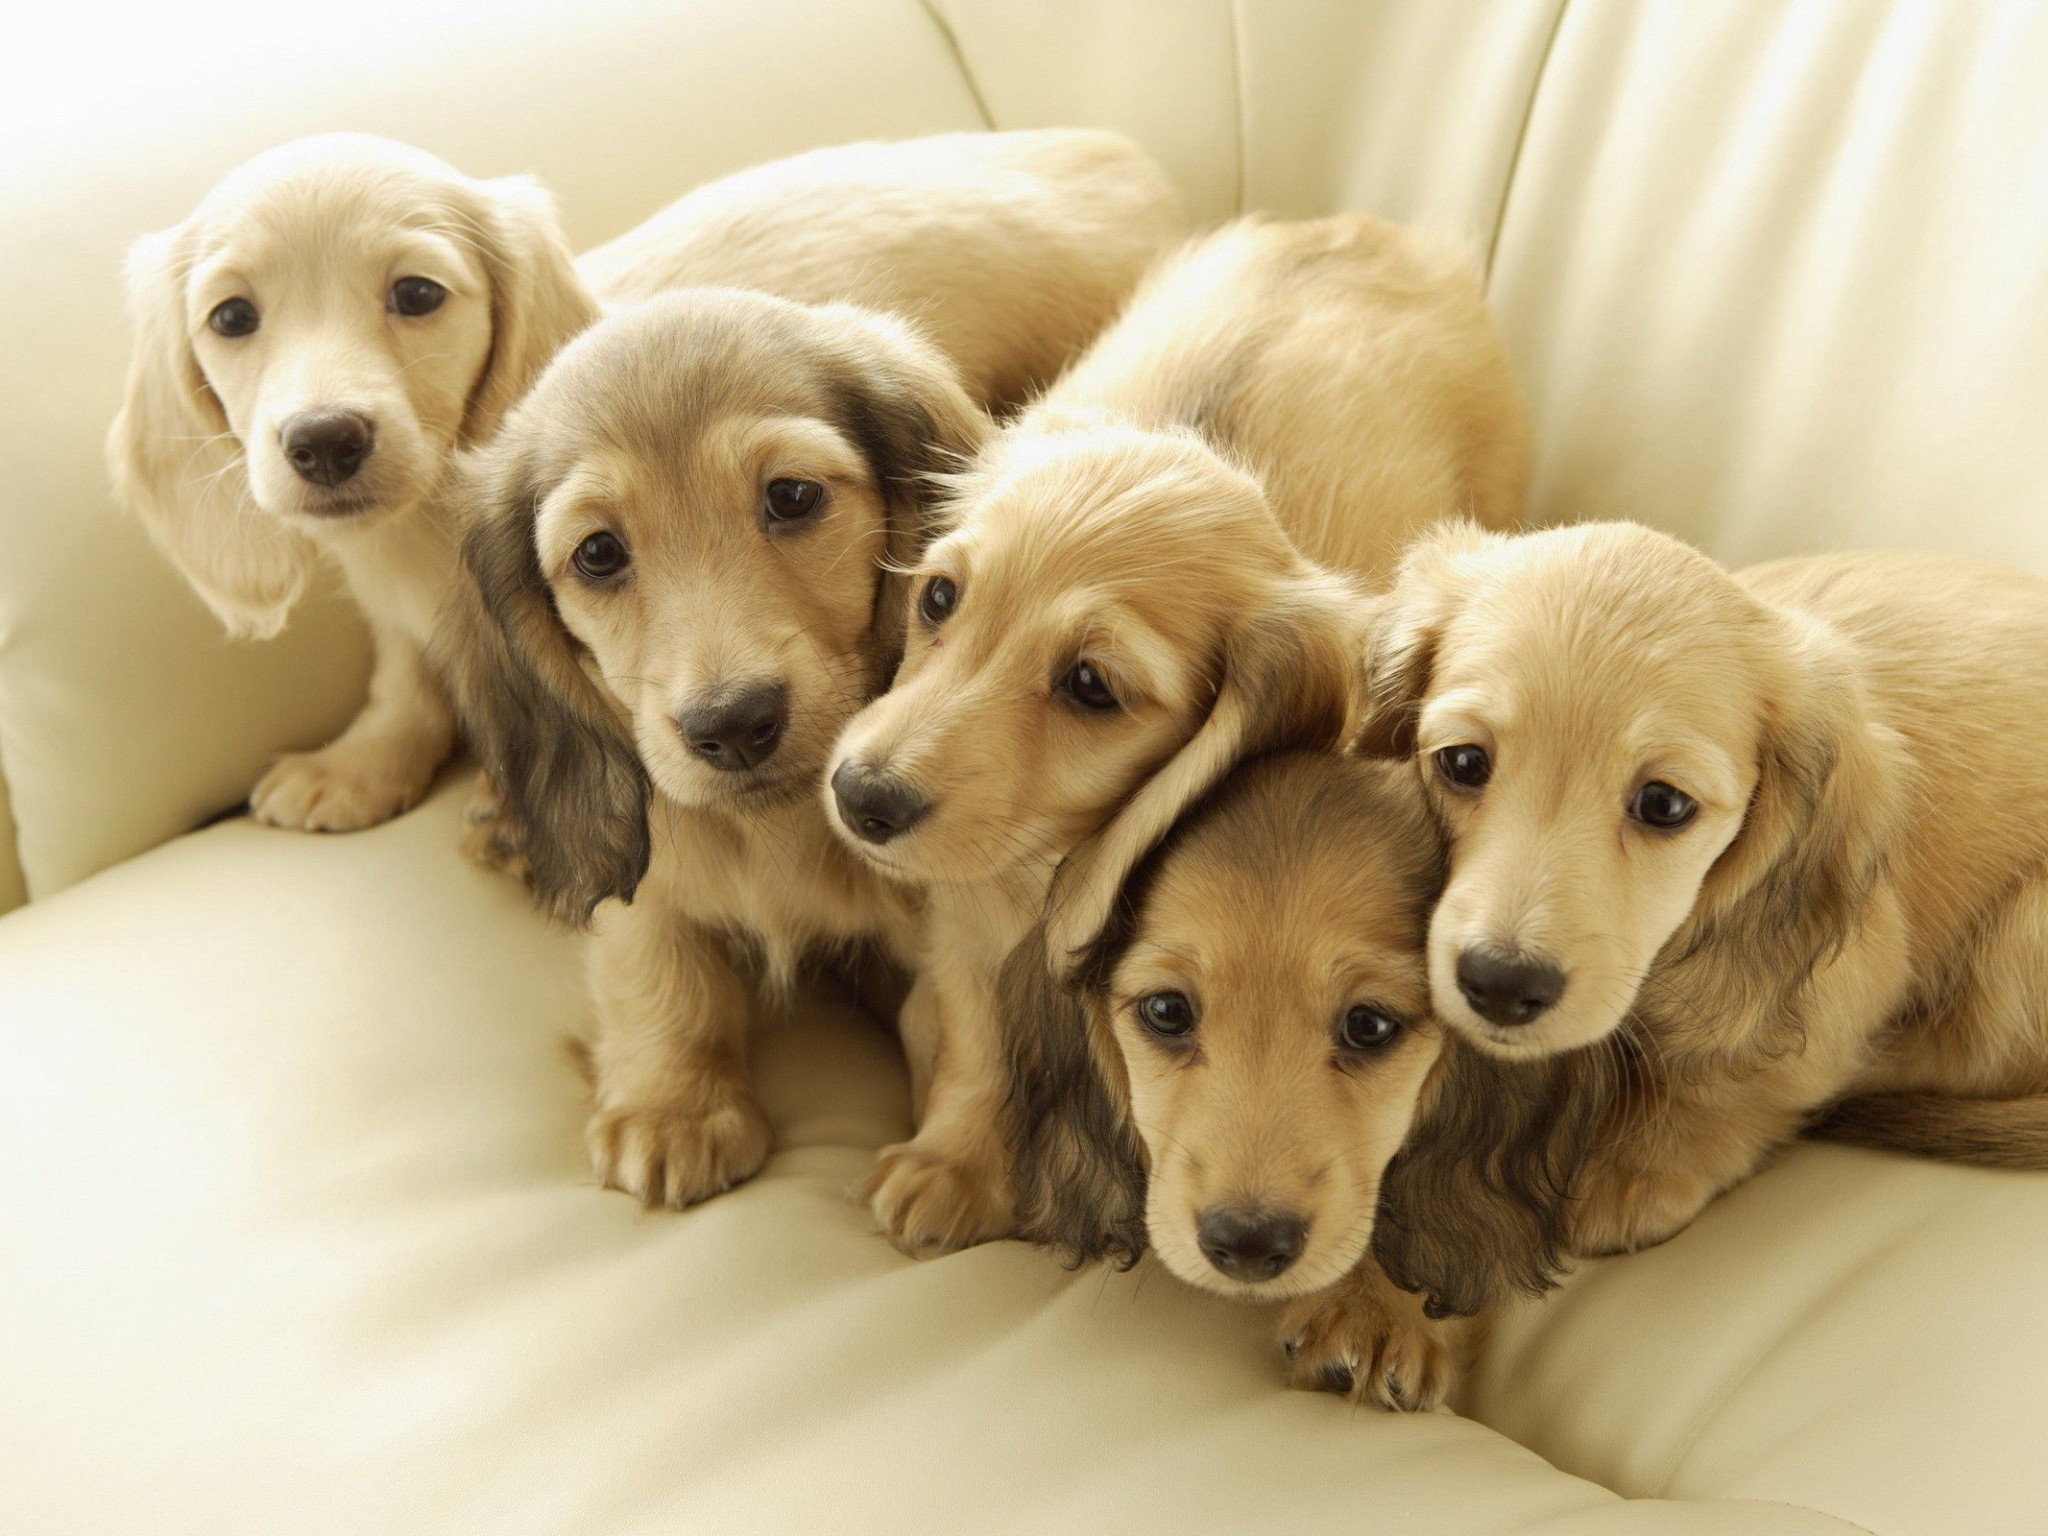 2048x1536 Dachshund Puppies Widescreen Wallpaper